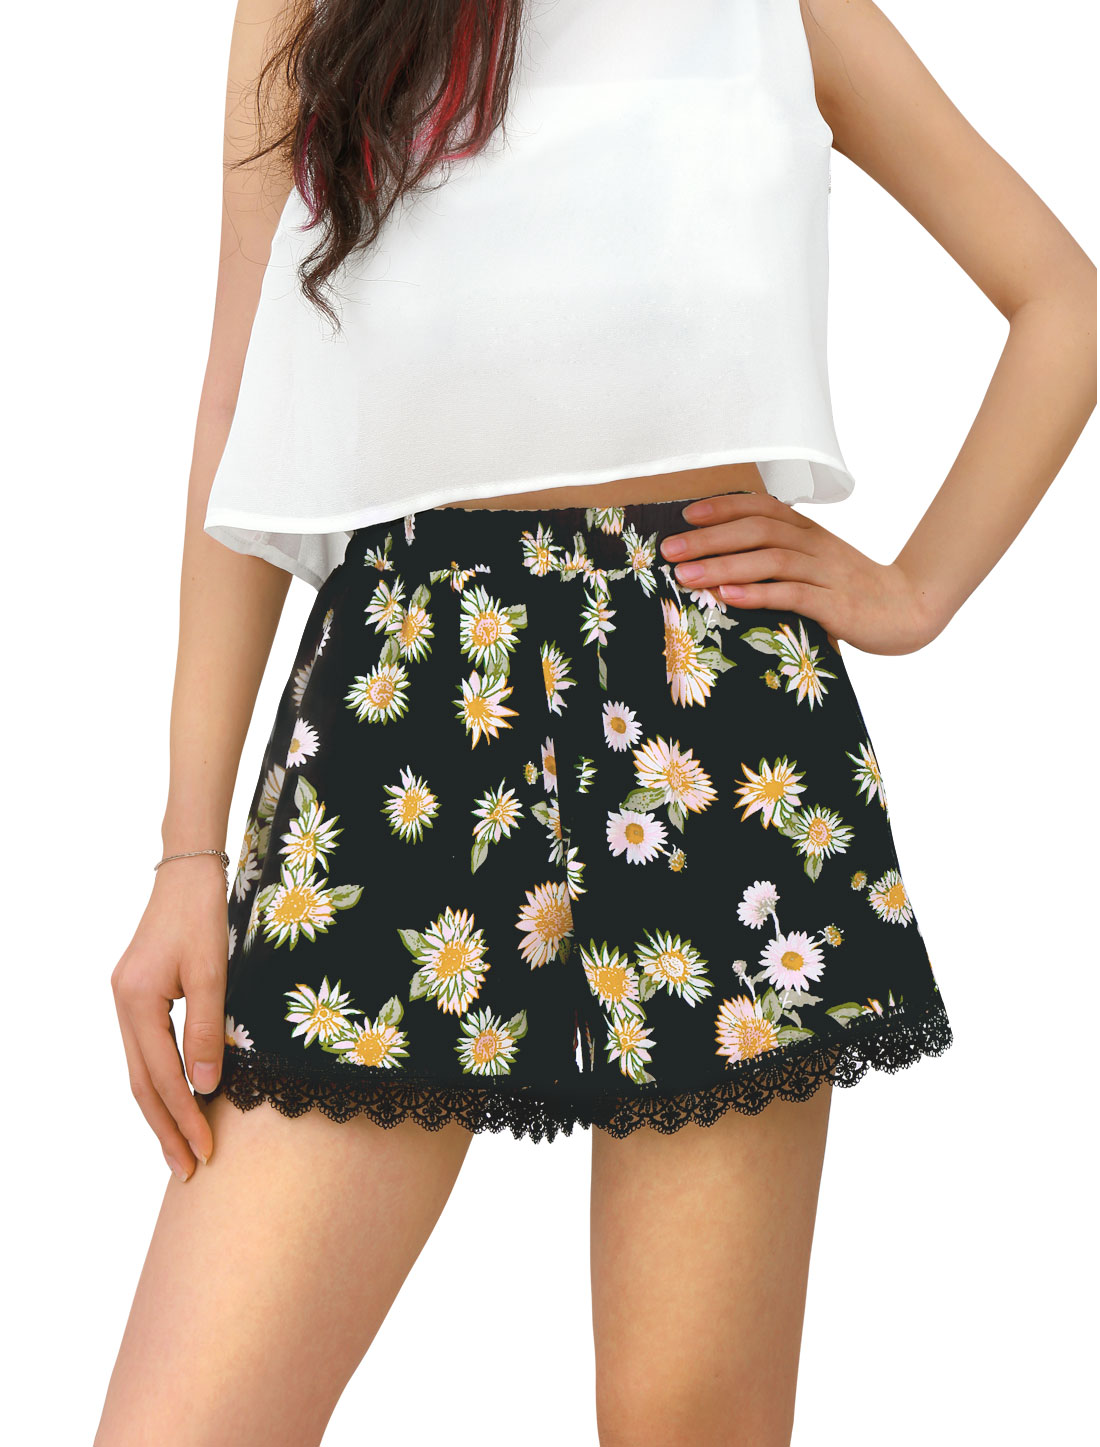 Allegra K Women Allover Flower Prints Elastic Waist Daisy Shorts Black XS